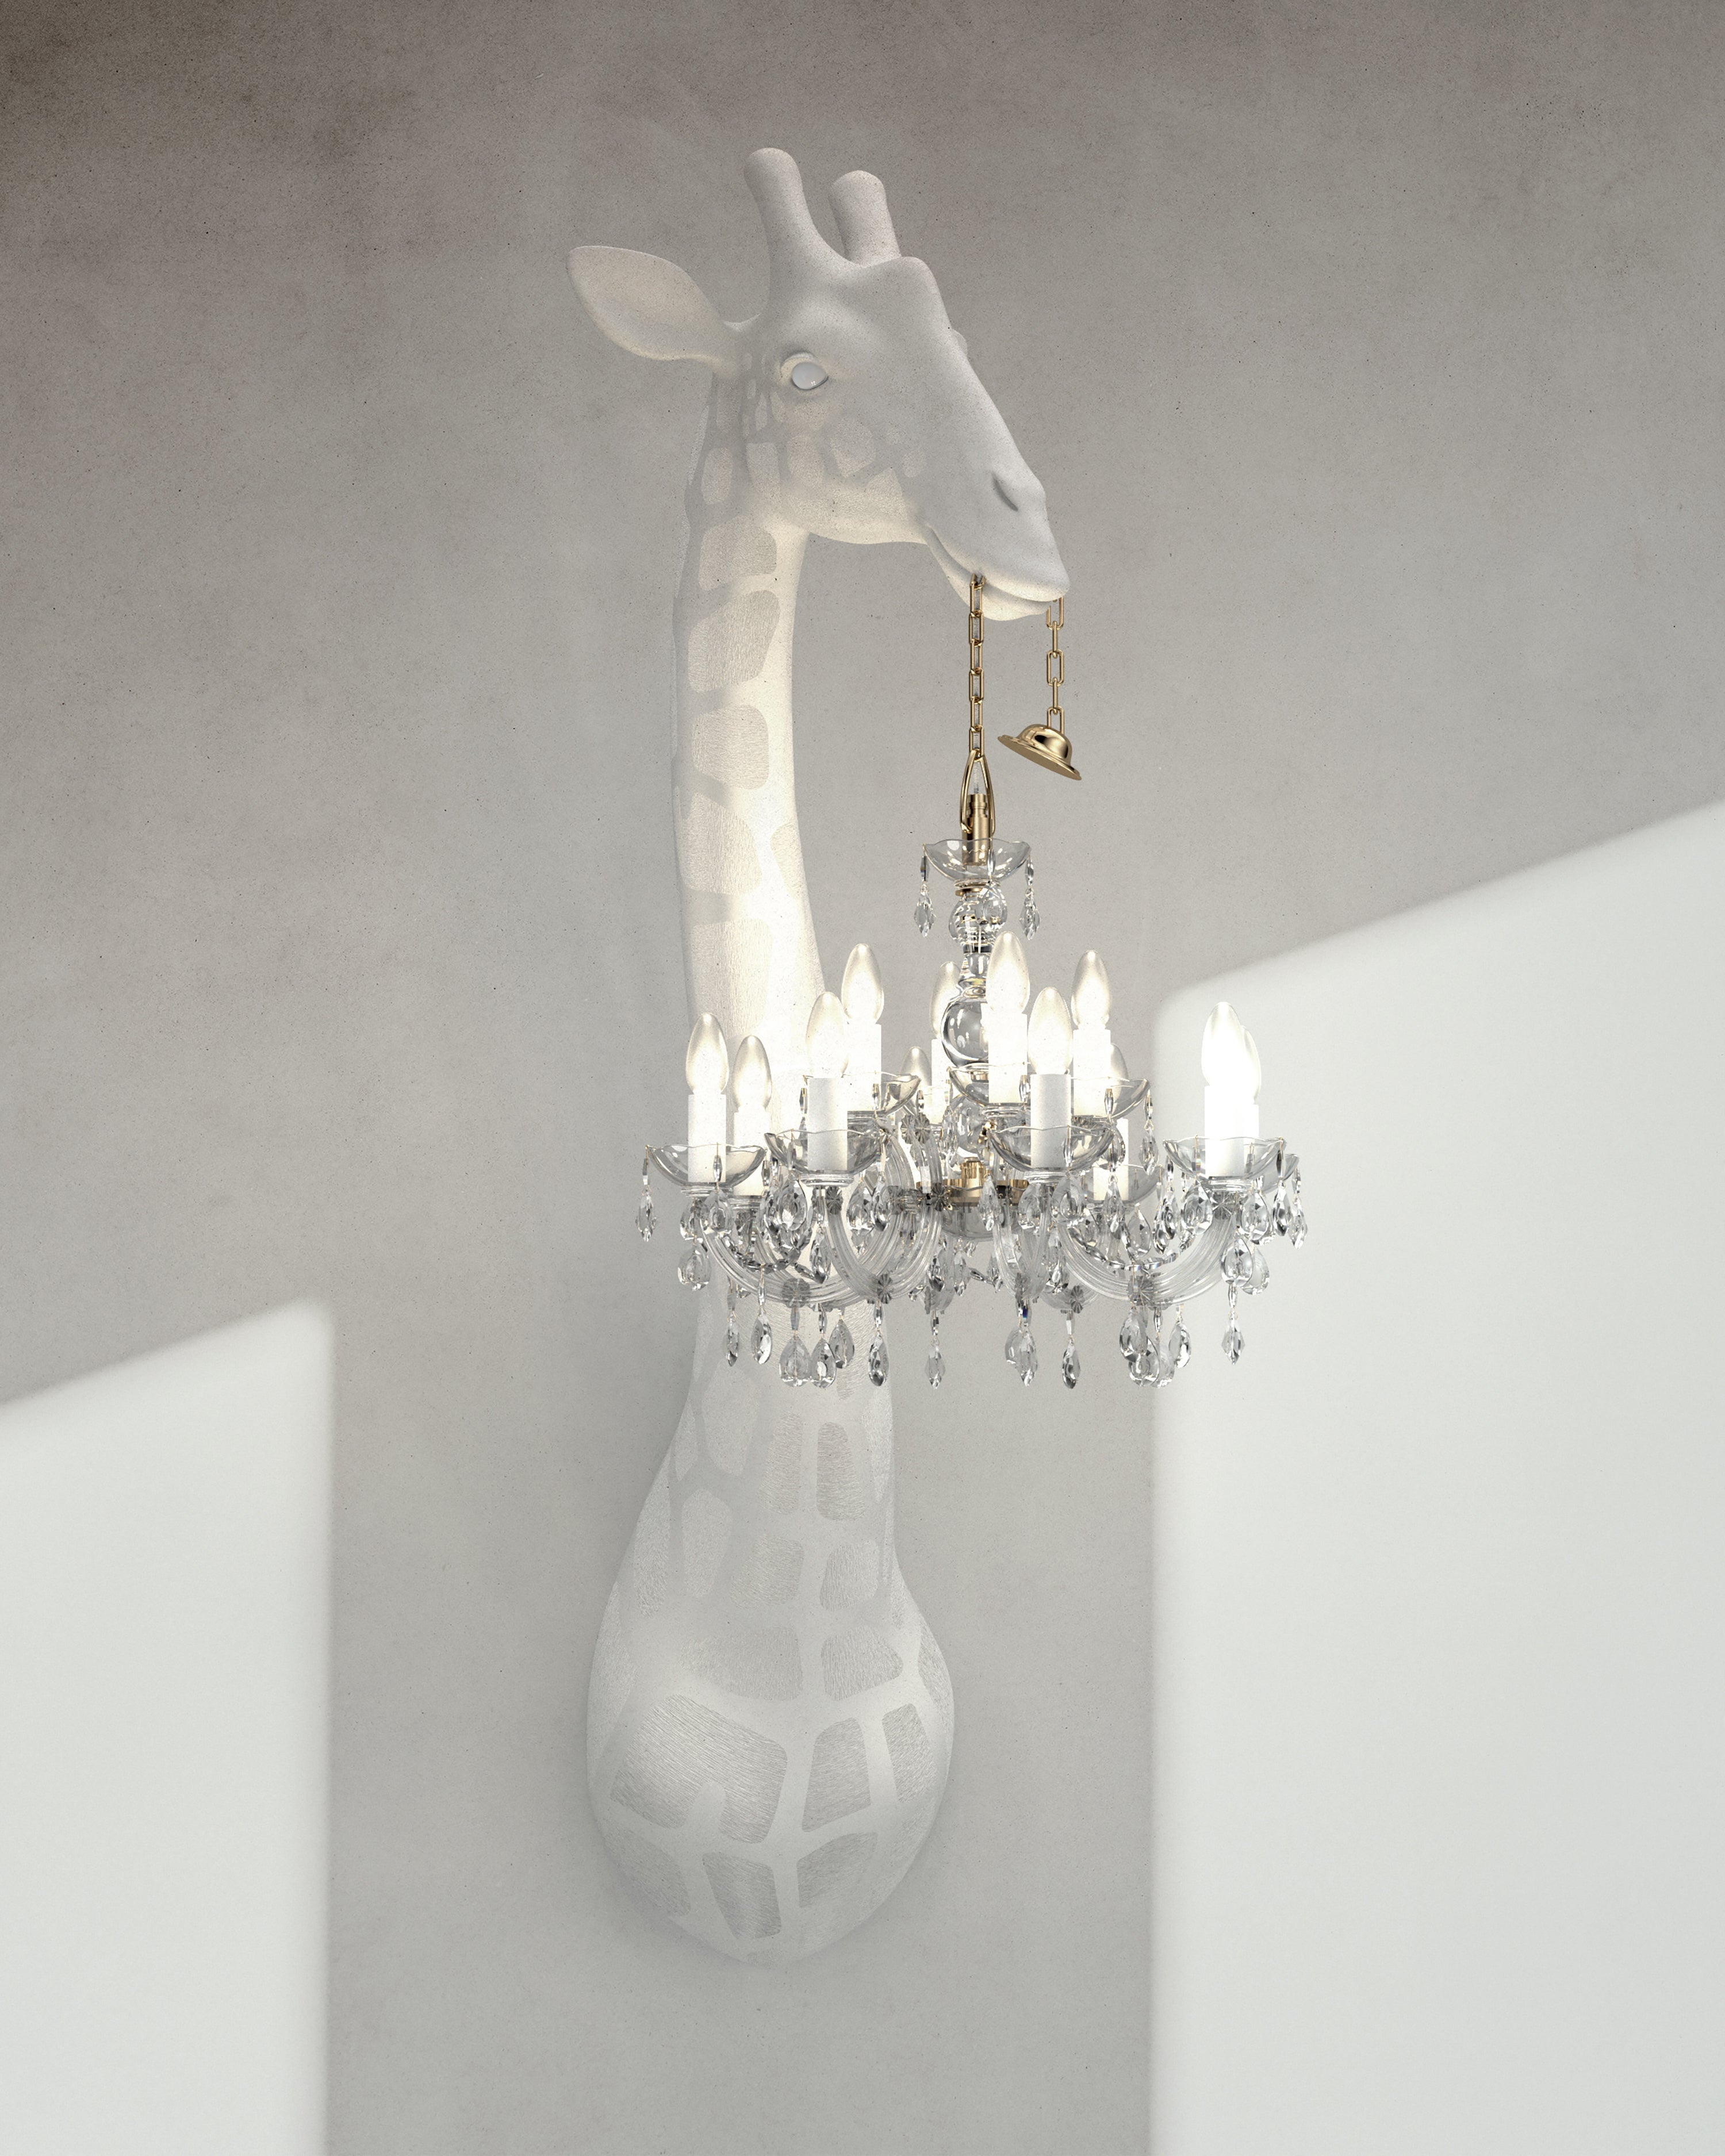 Customizable Modern 5 5 Foot White Or Black Giraffe Wall Lamp Sconce Chandalier For Sale At 1stdibs